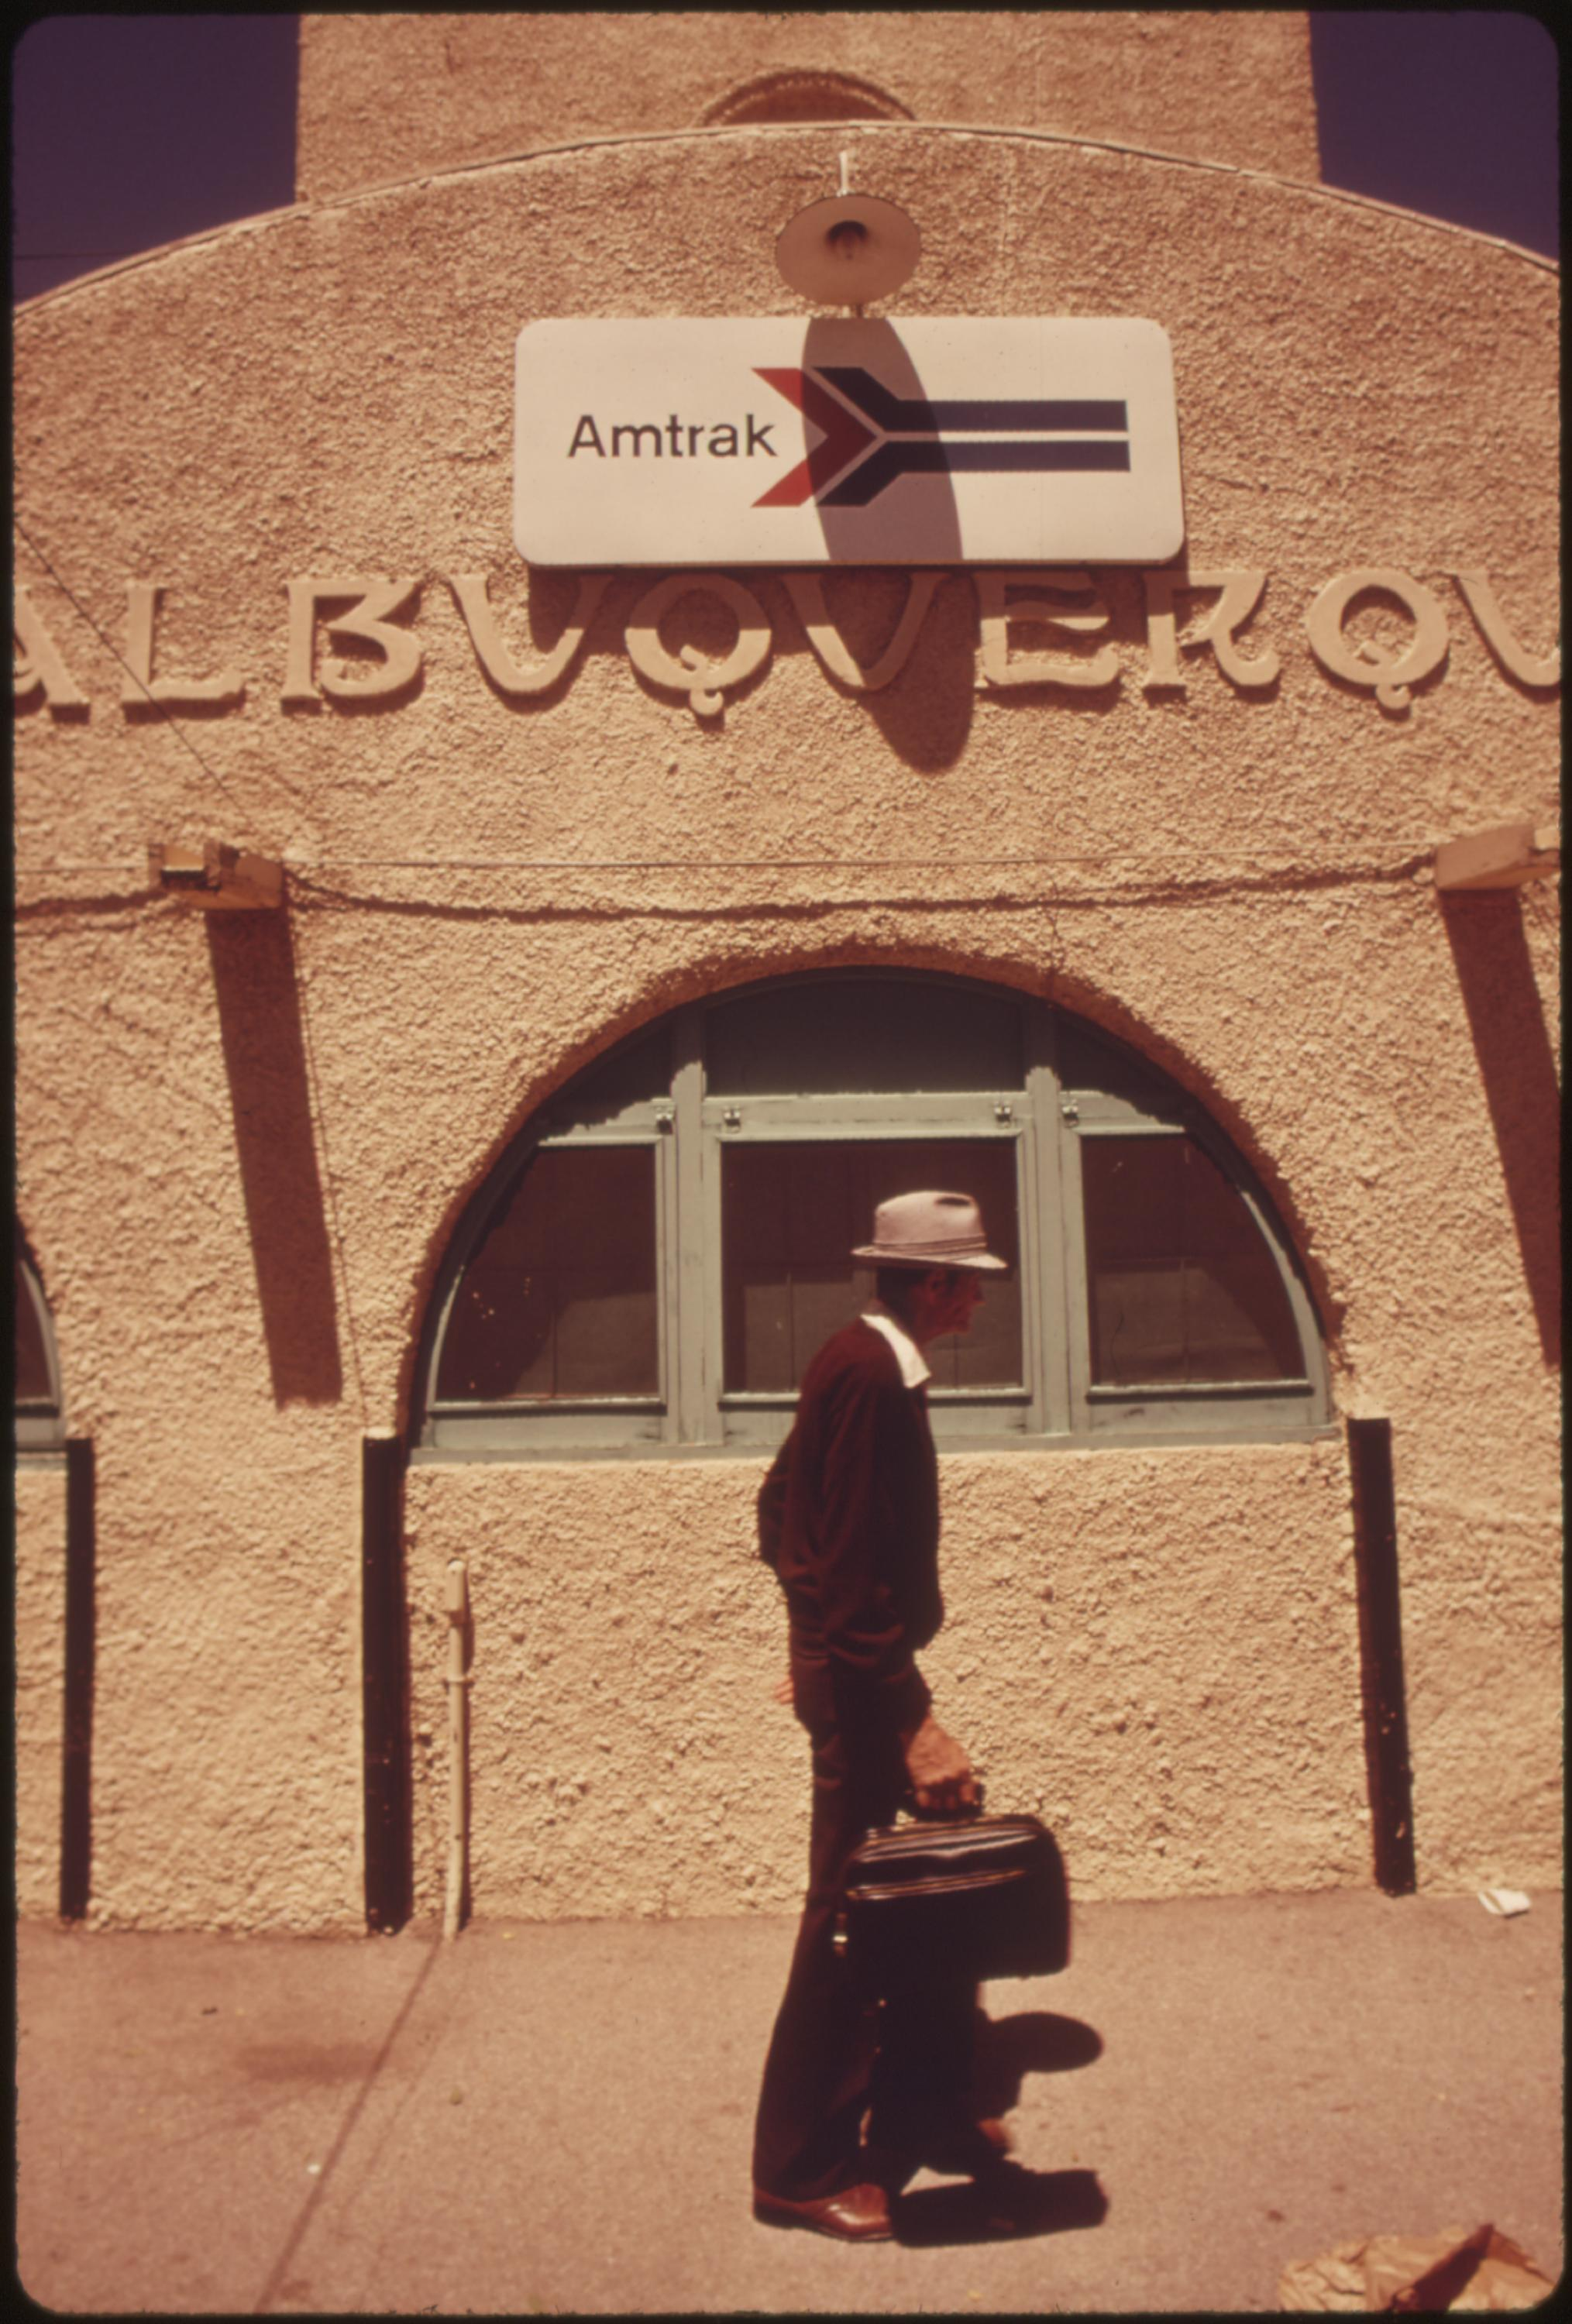 Albuquerque, New Mexico, train station is one of the stops the Southwest Limited makes on its run from Los Angeles, California to Chicago, June 1974